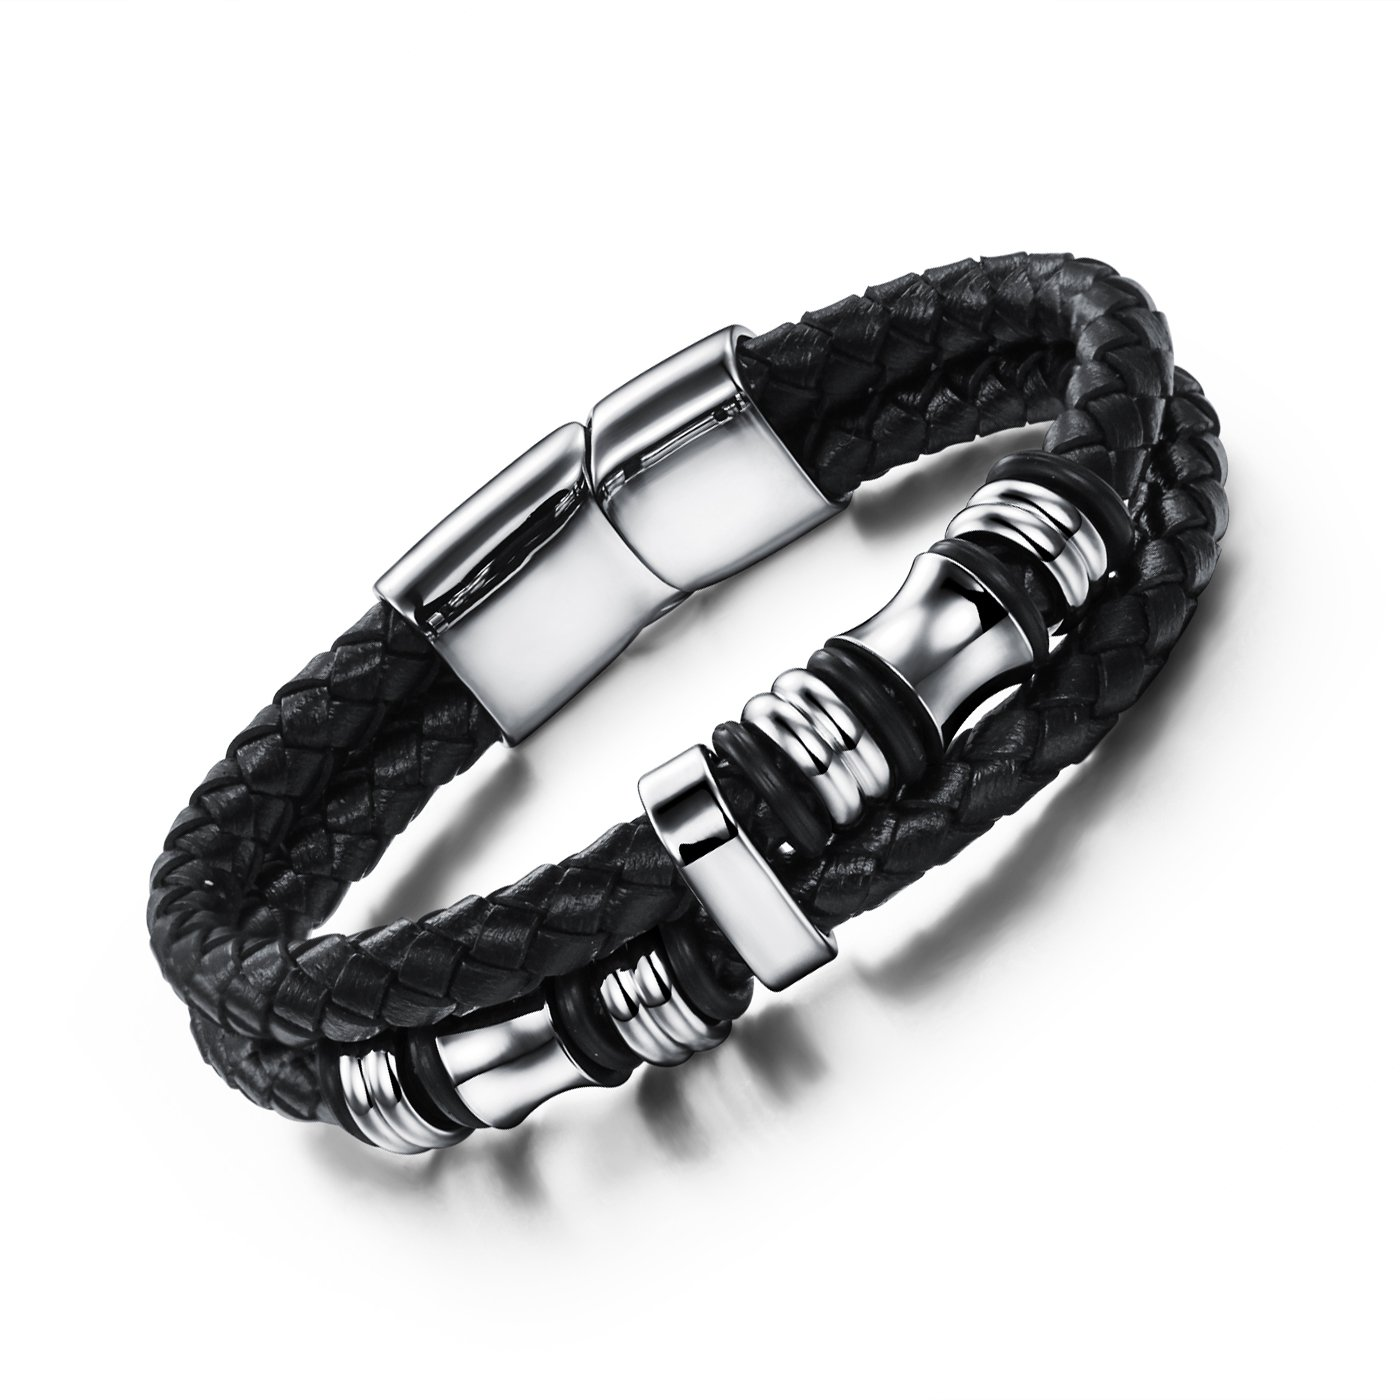 ASHMITA Mens Black Leather Bracelet Genuine Stainless Steel Magnetic Clasp Cuff Bangle 7.5 Inch